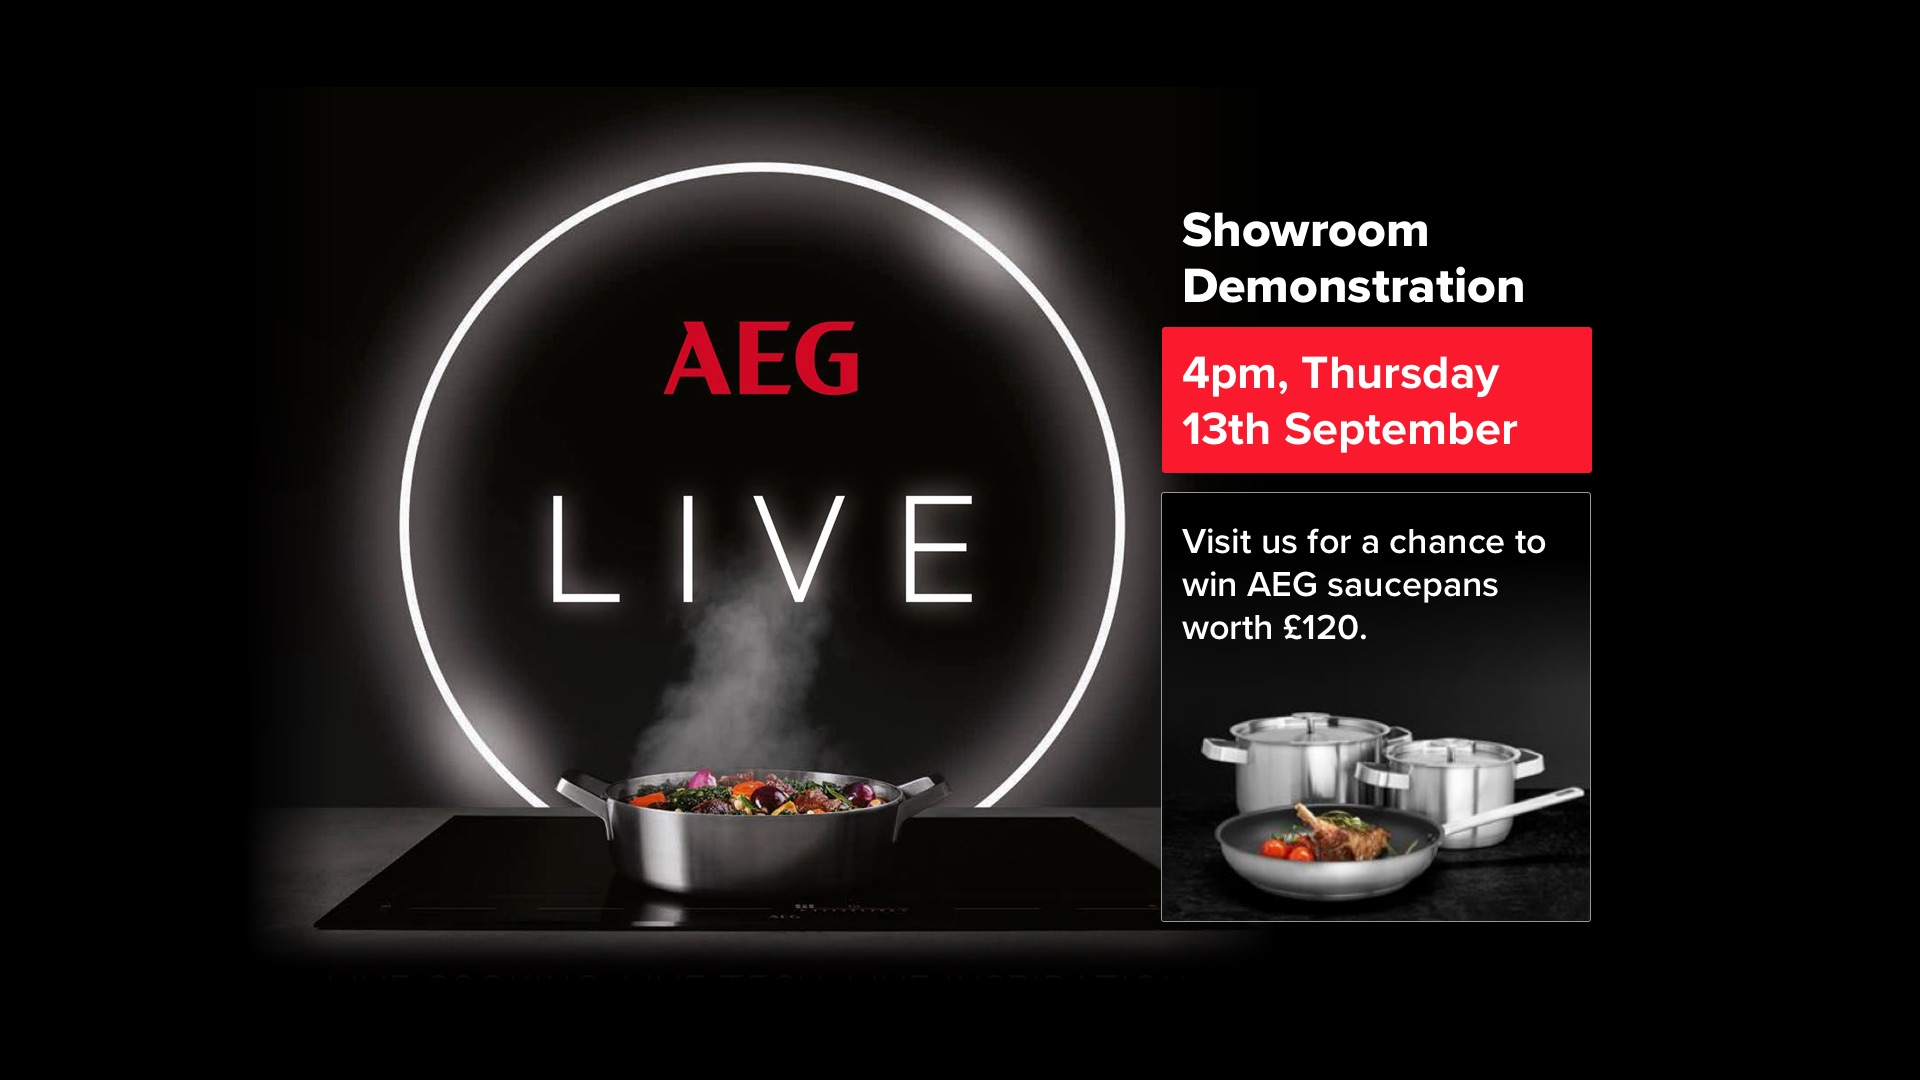 aeg-live-showroom-demonstration-event-large